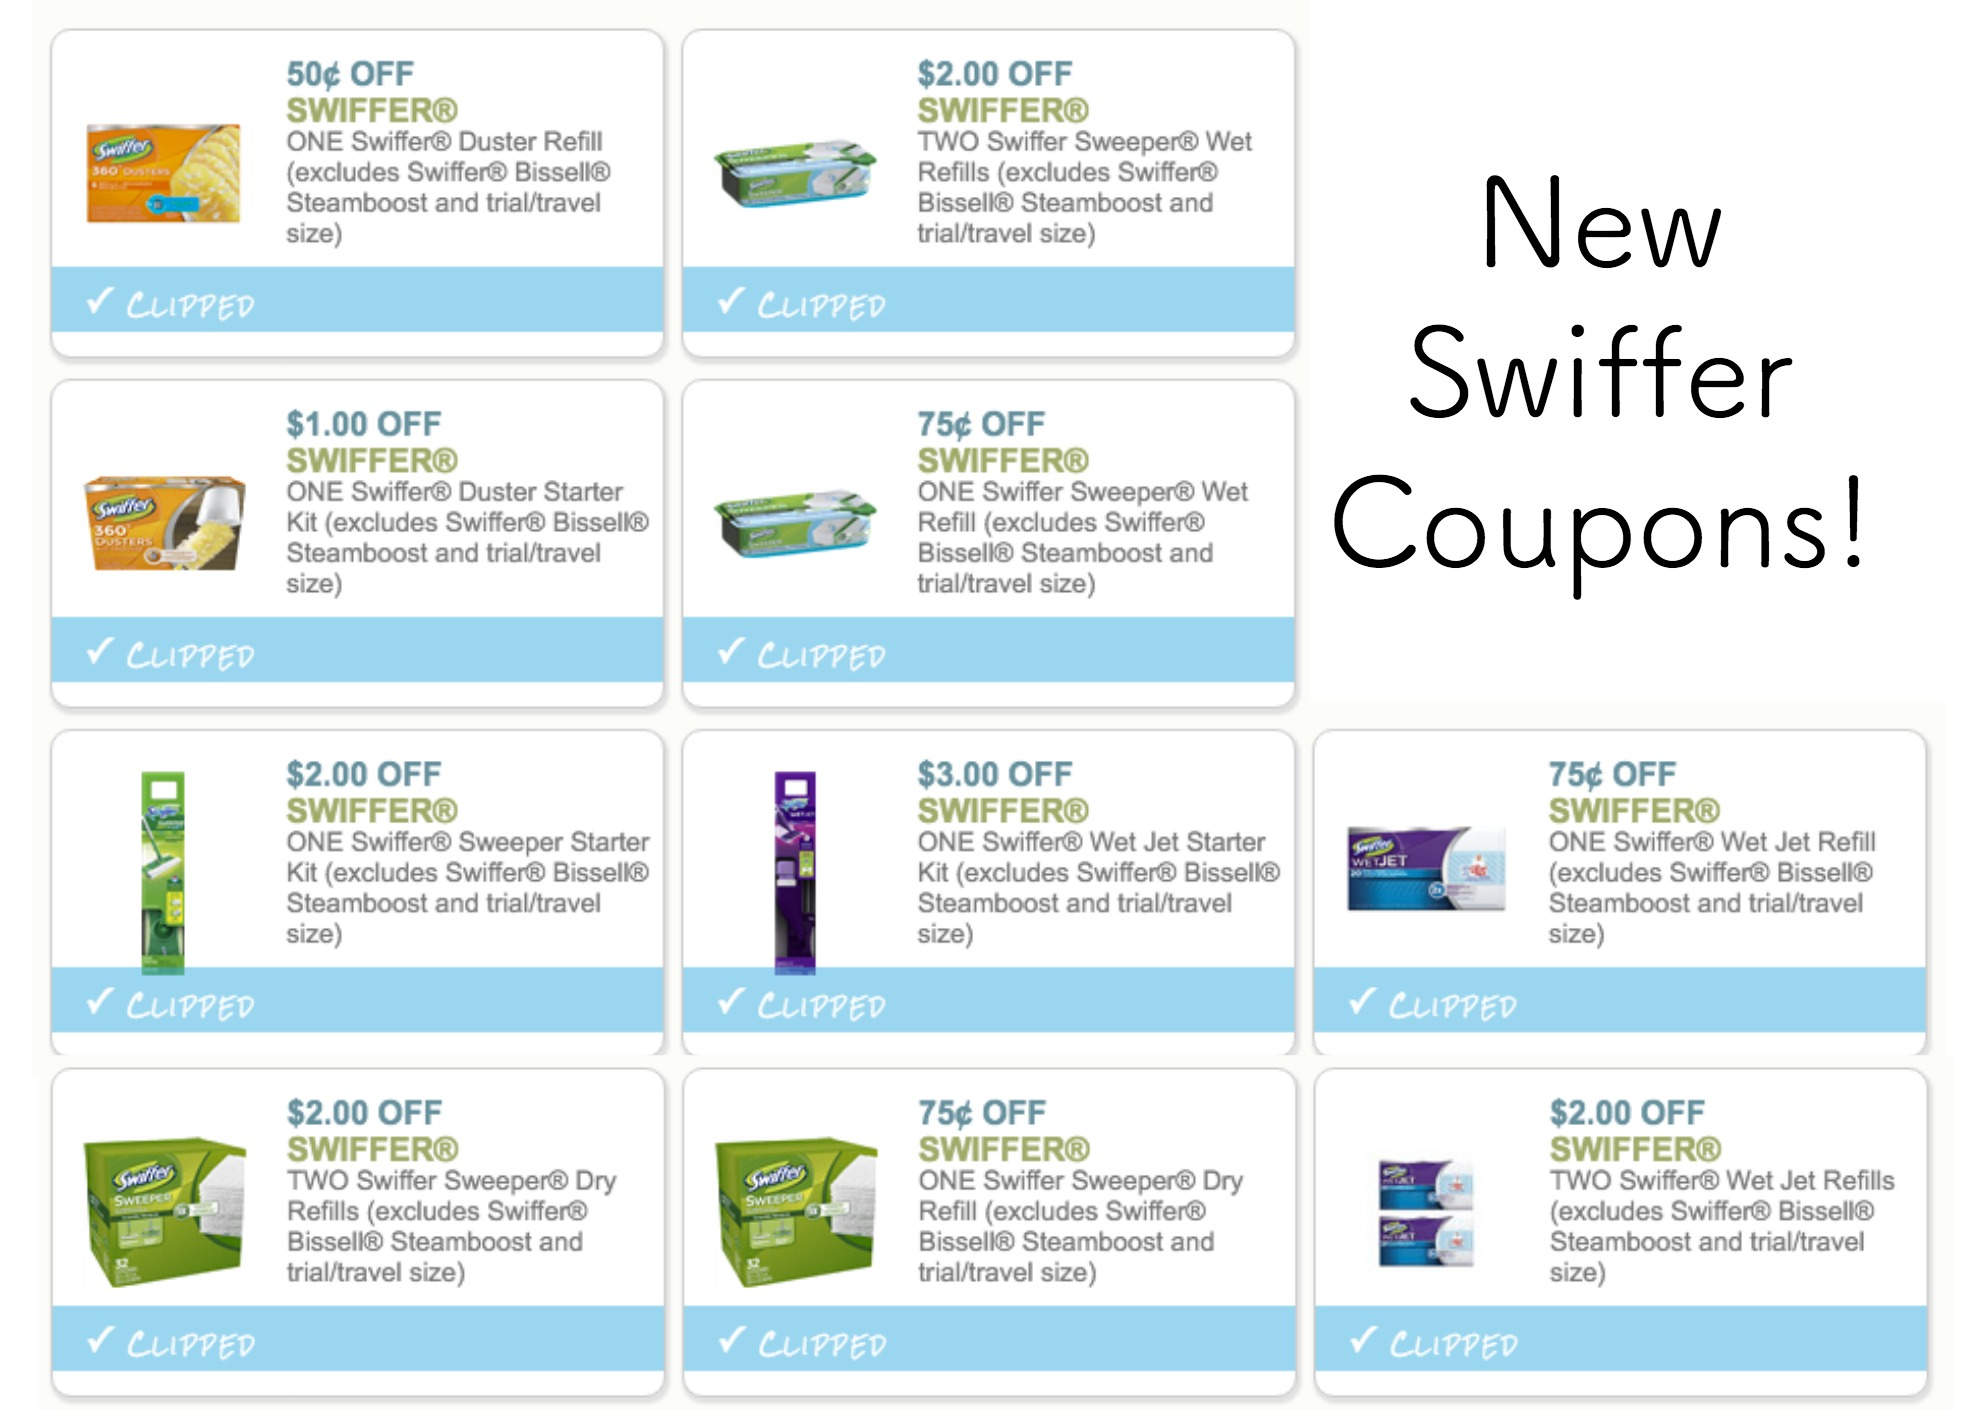 swiffer wet jet coupons printable swiffer refill coupons the harris teeter deals 25009 | swiffer 1